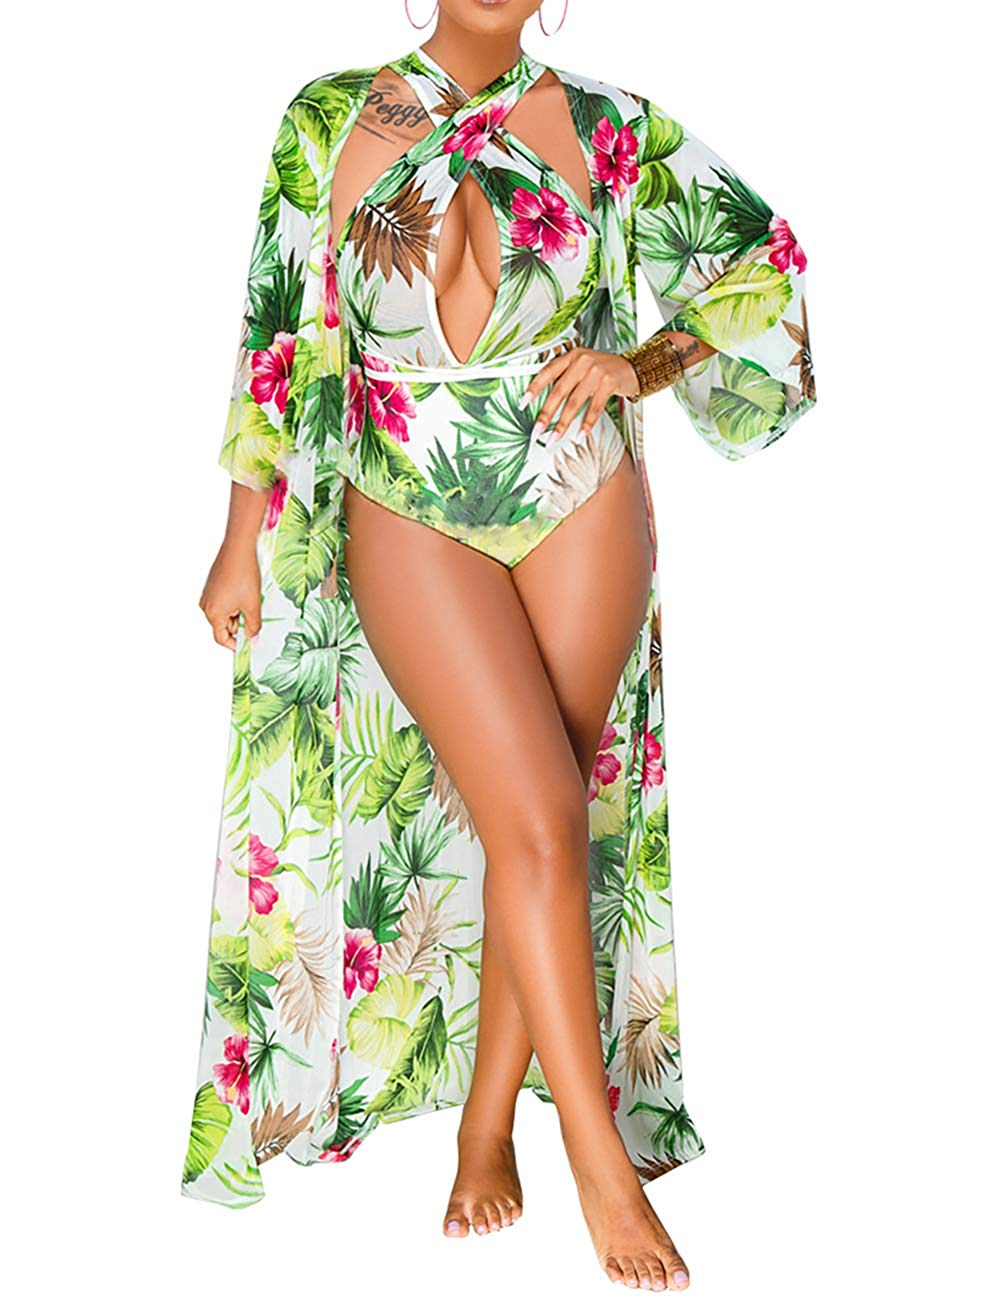 0216602df5f77 ... Sexy Printed Green 3 Piece V Neck Swimsuit w/ Matching Cover Up ...